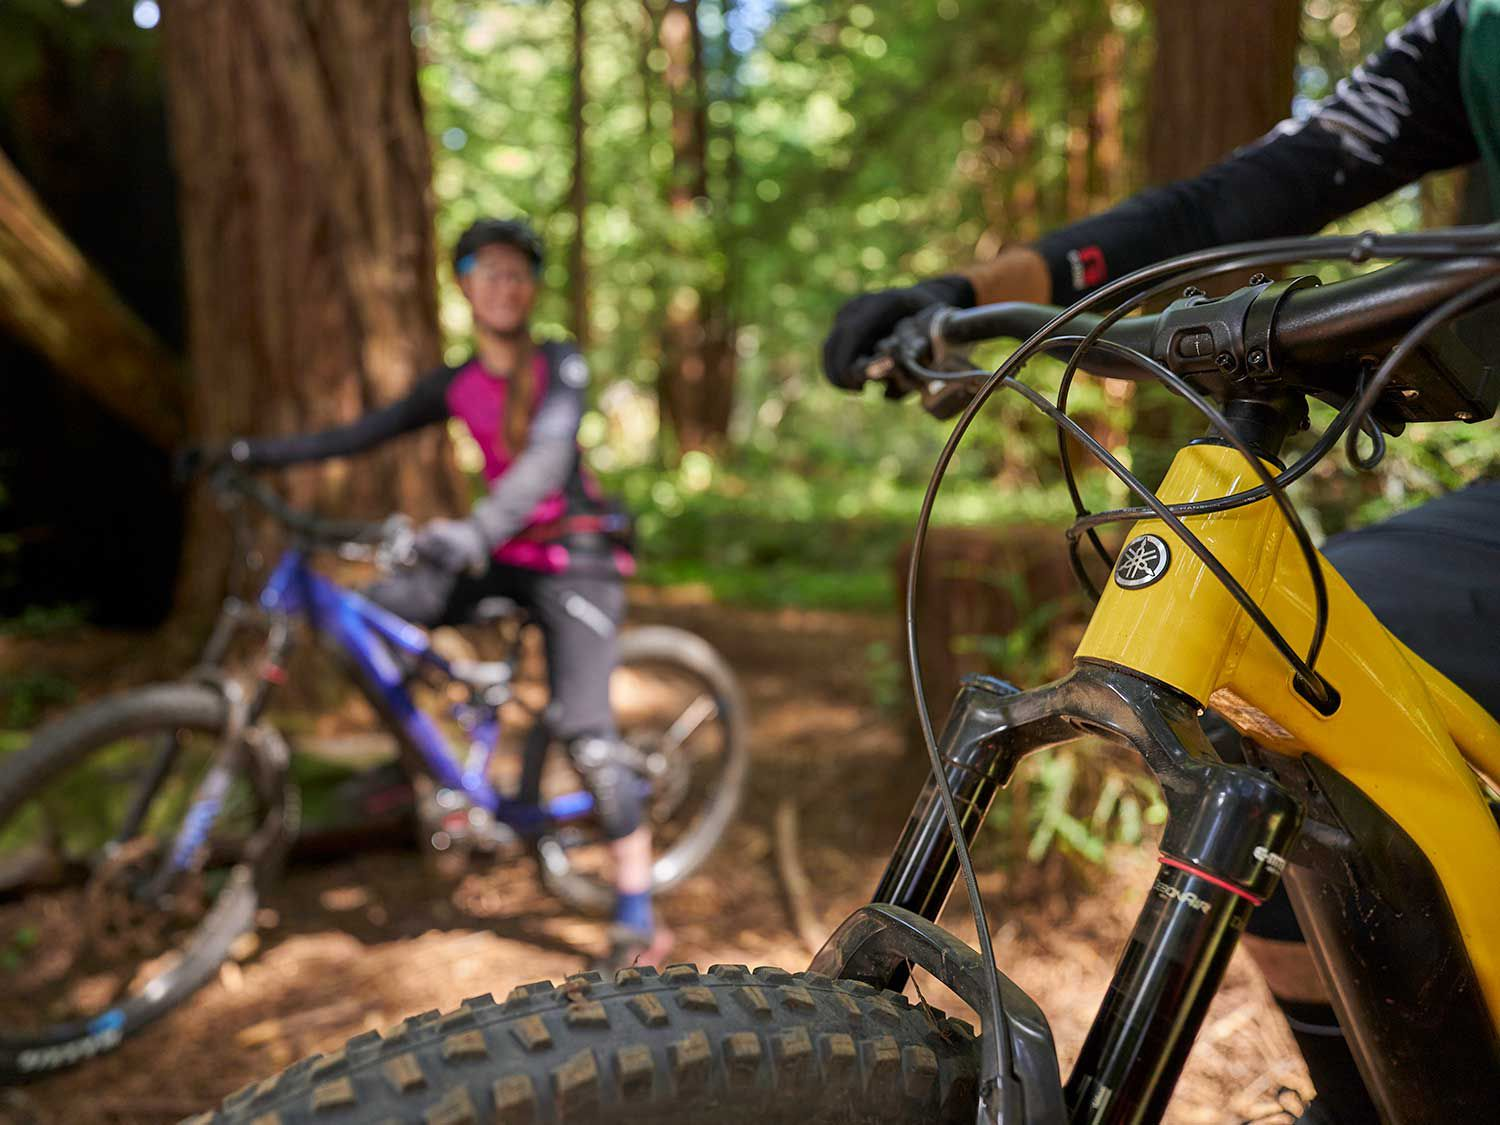 Yamaha continues to expand its powersport line with the addition of a pedal-assist bicycle division, Yamaha Bicycles.